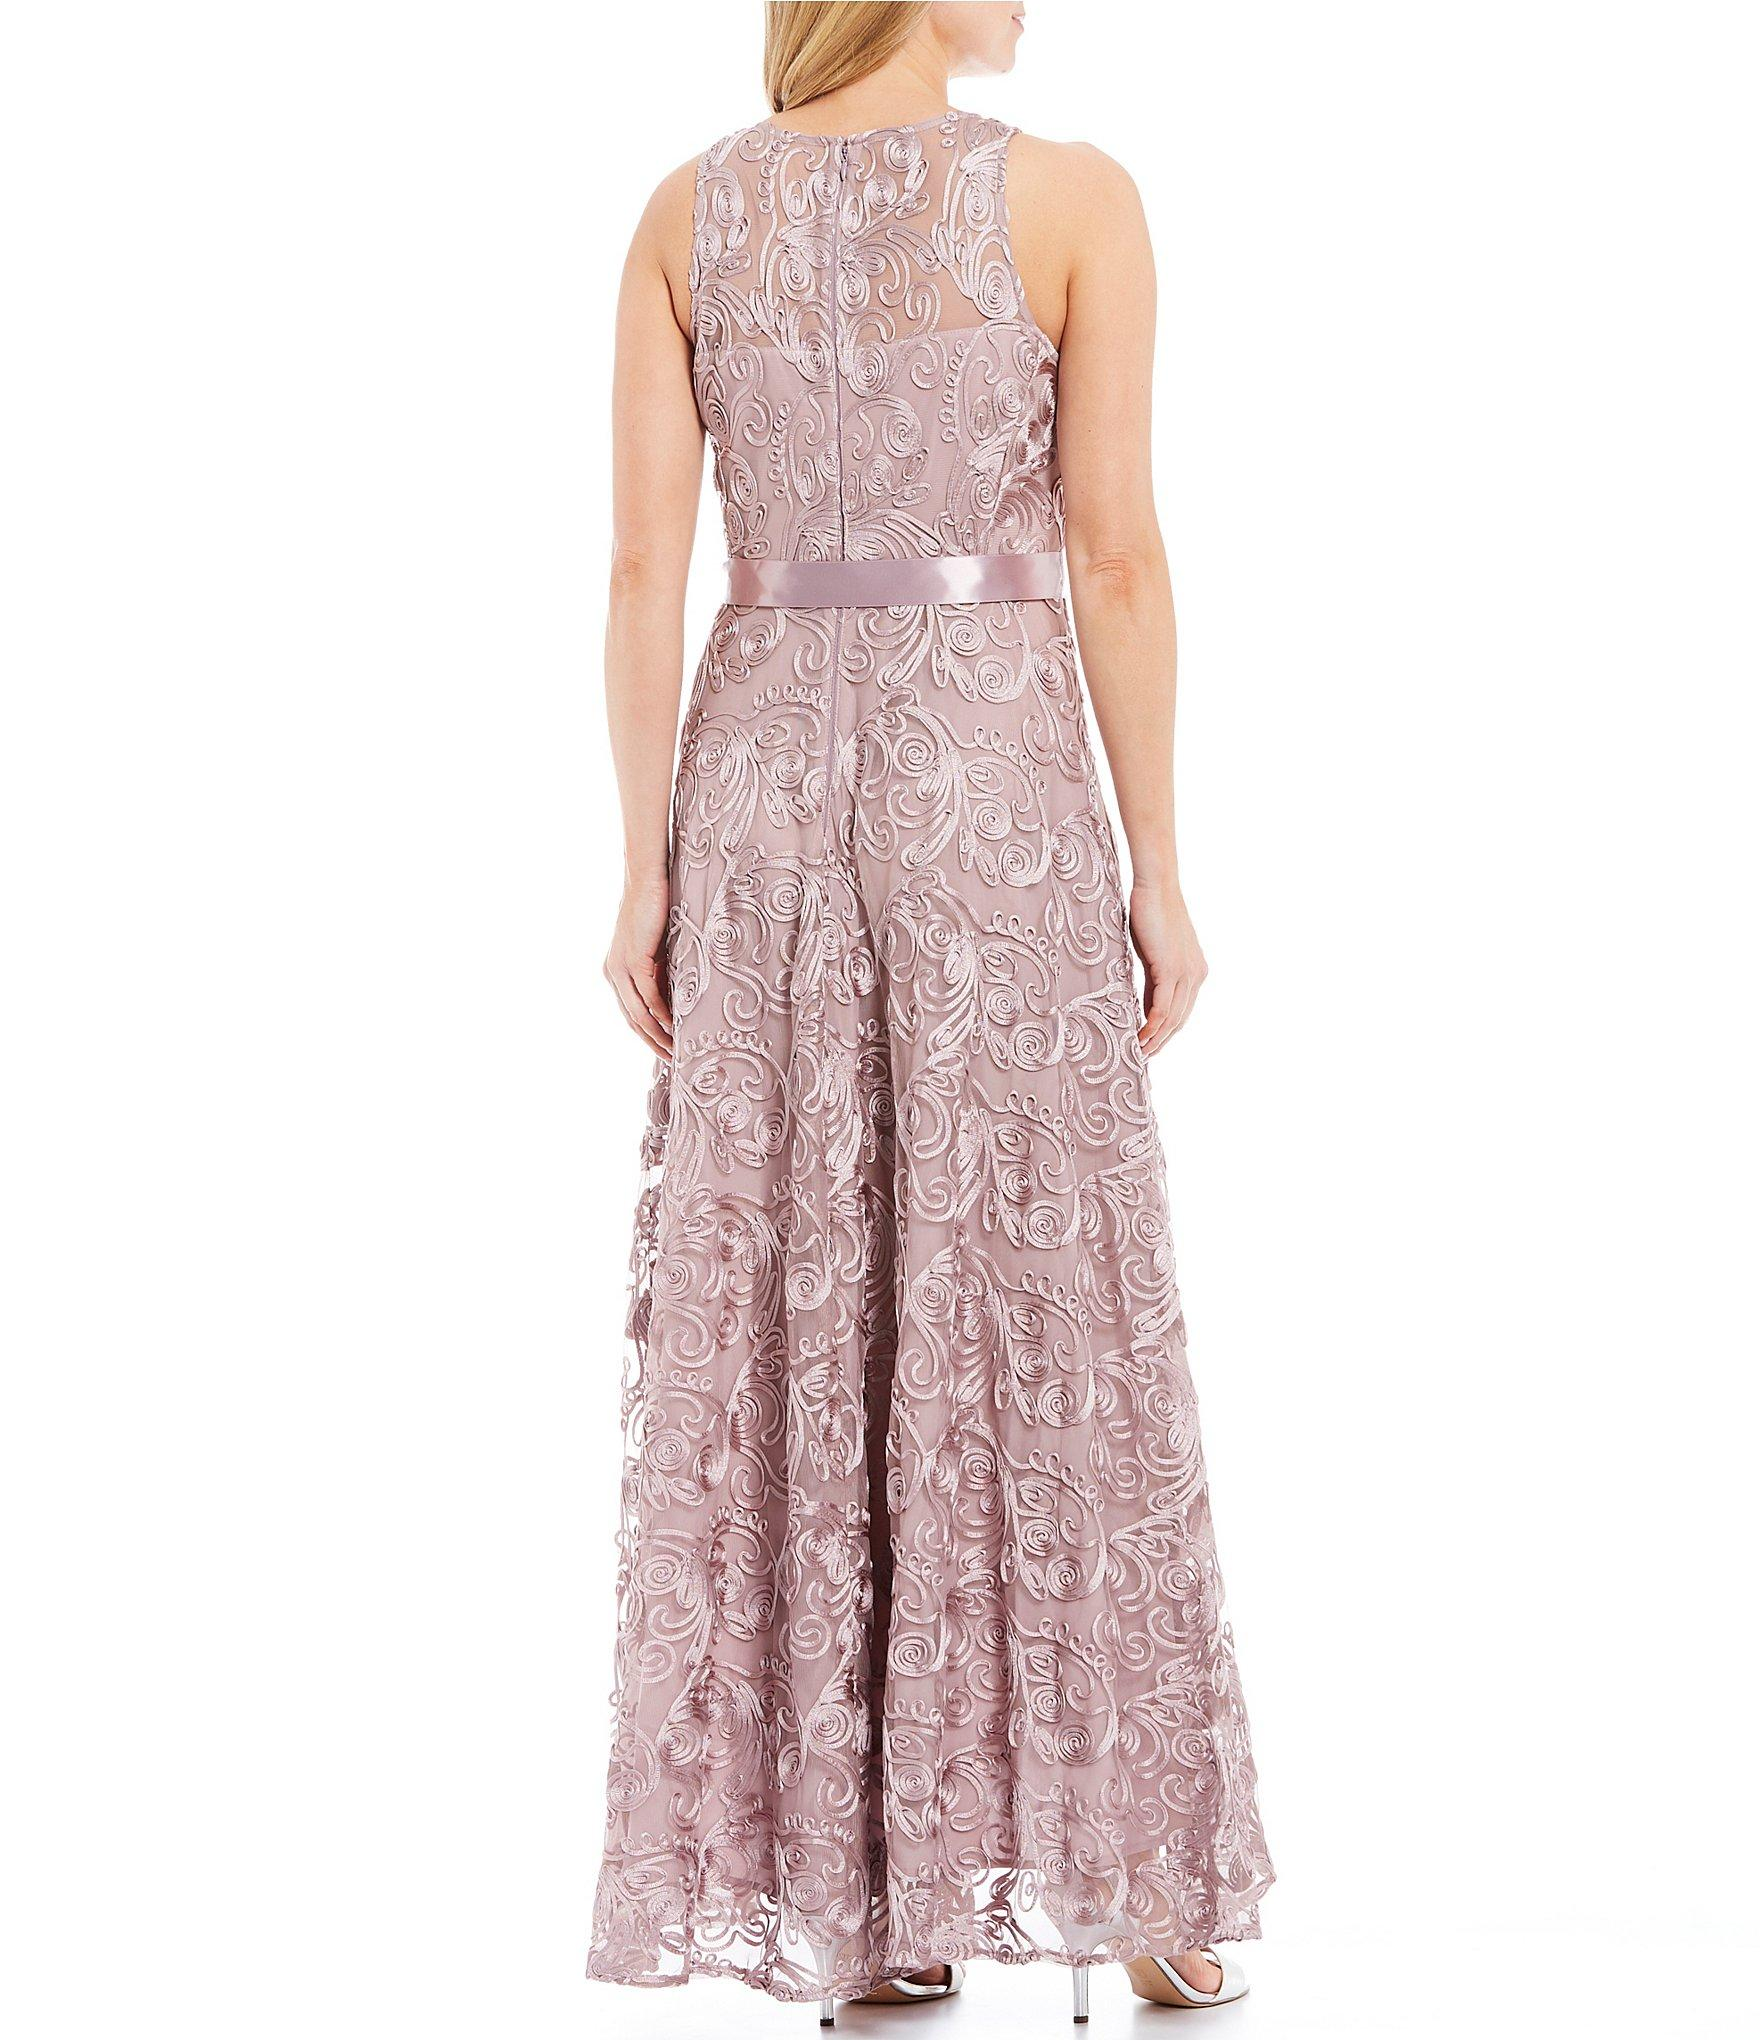 a0bb5832636 Tahari - Purple Petite Size Embroidered Lace Gown - Lyst. View fullscreen